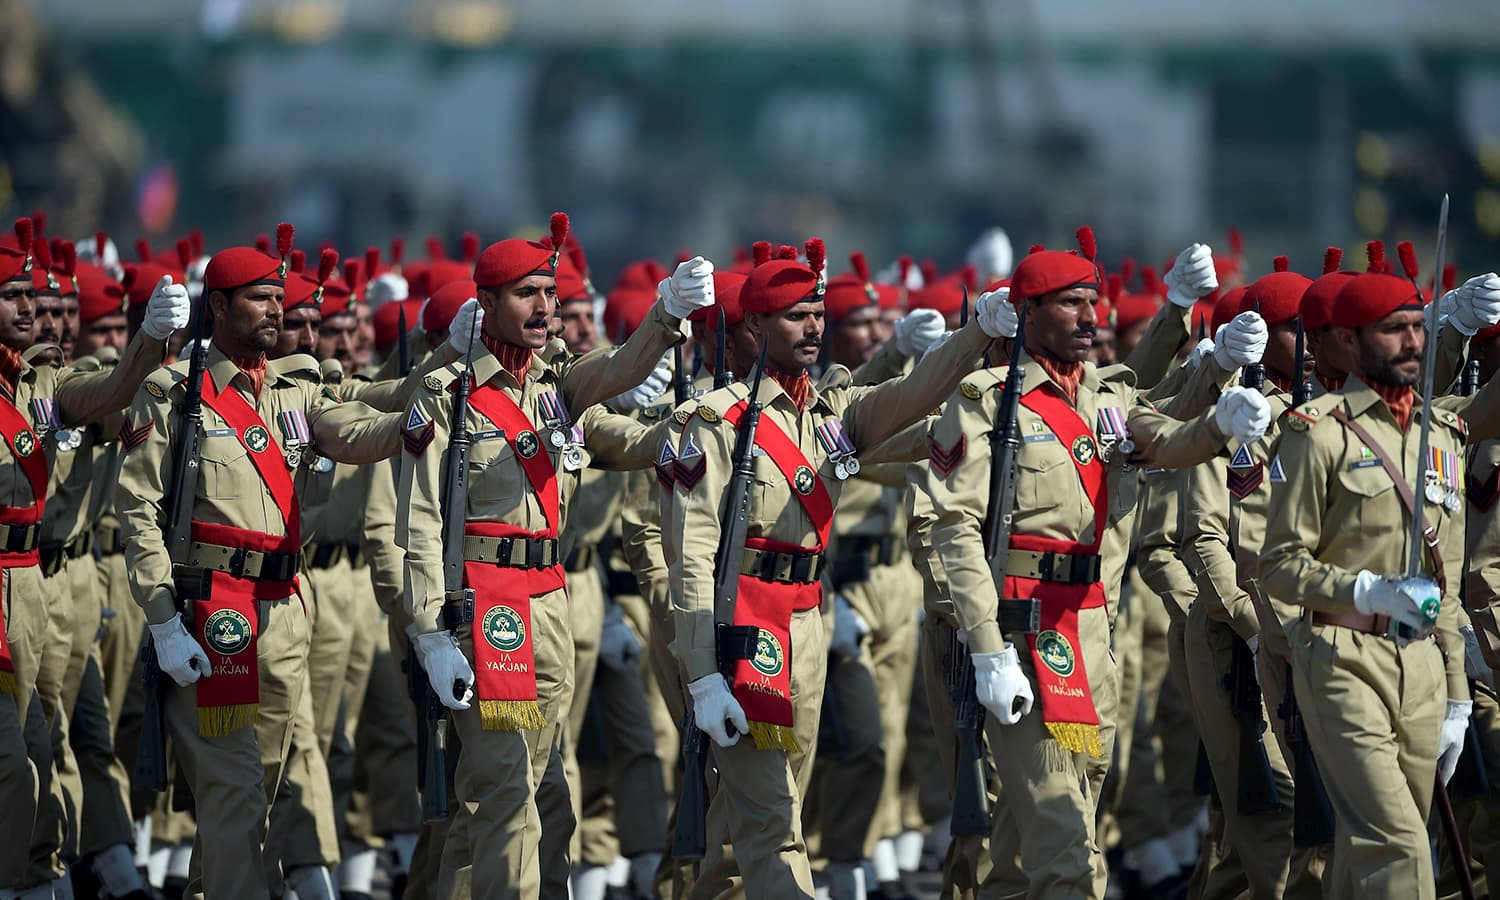 Pakistani soldiers march past during the Pakistan Day military parade in Islamabad. ─AFP